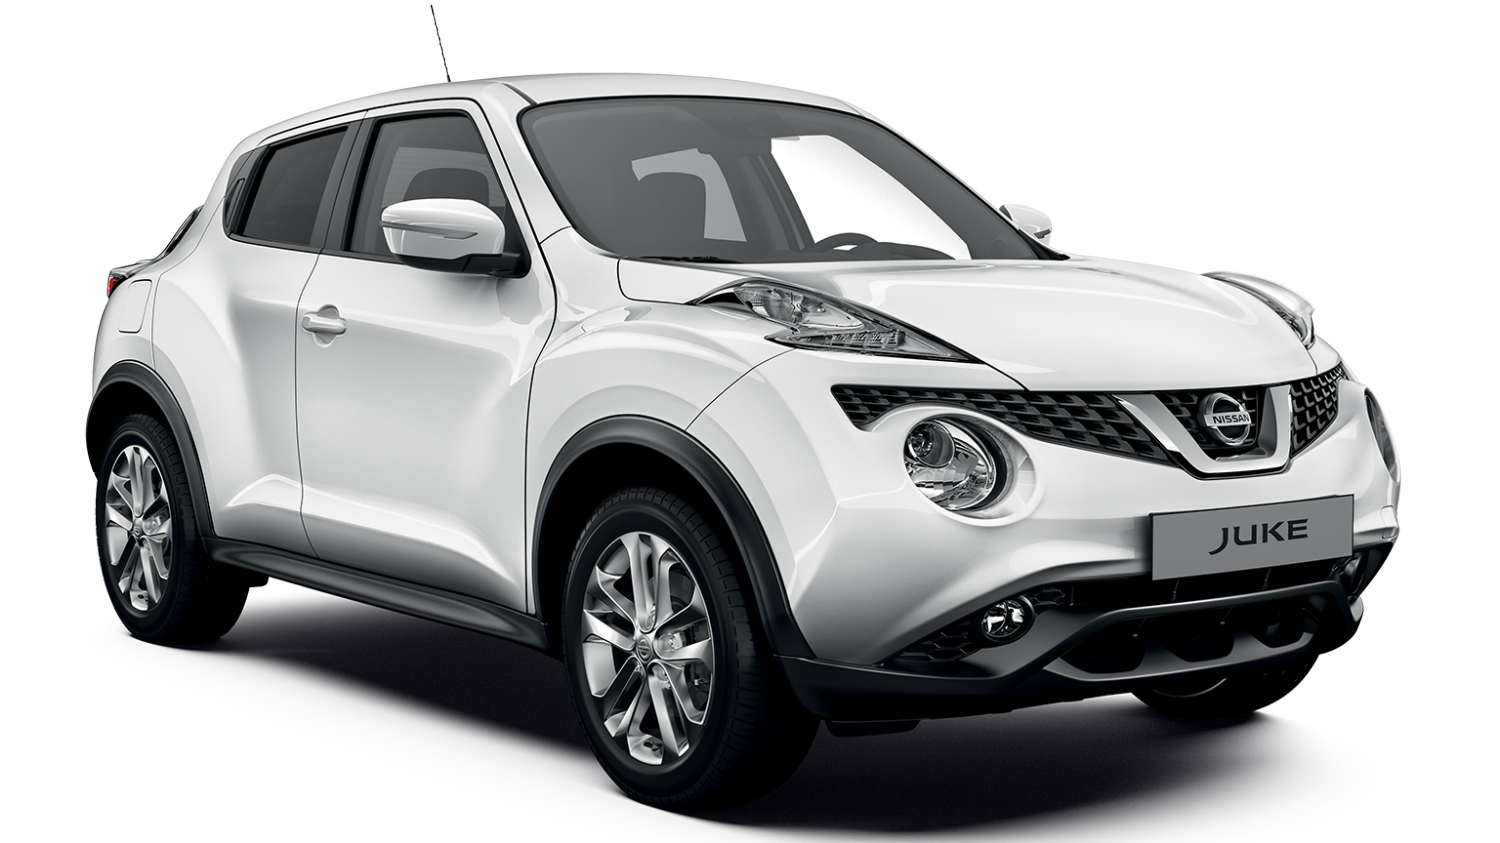 Nissan Juke N-Connecta - 3/4 front view